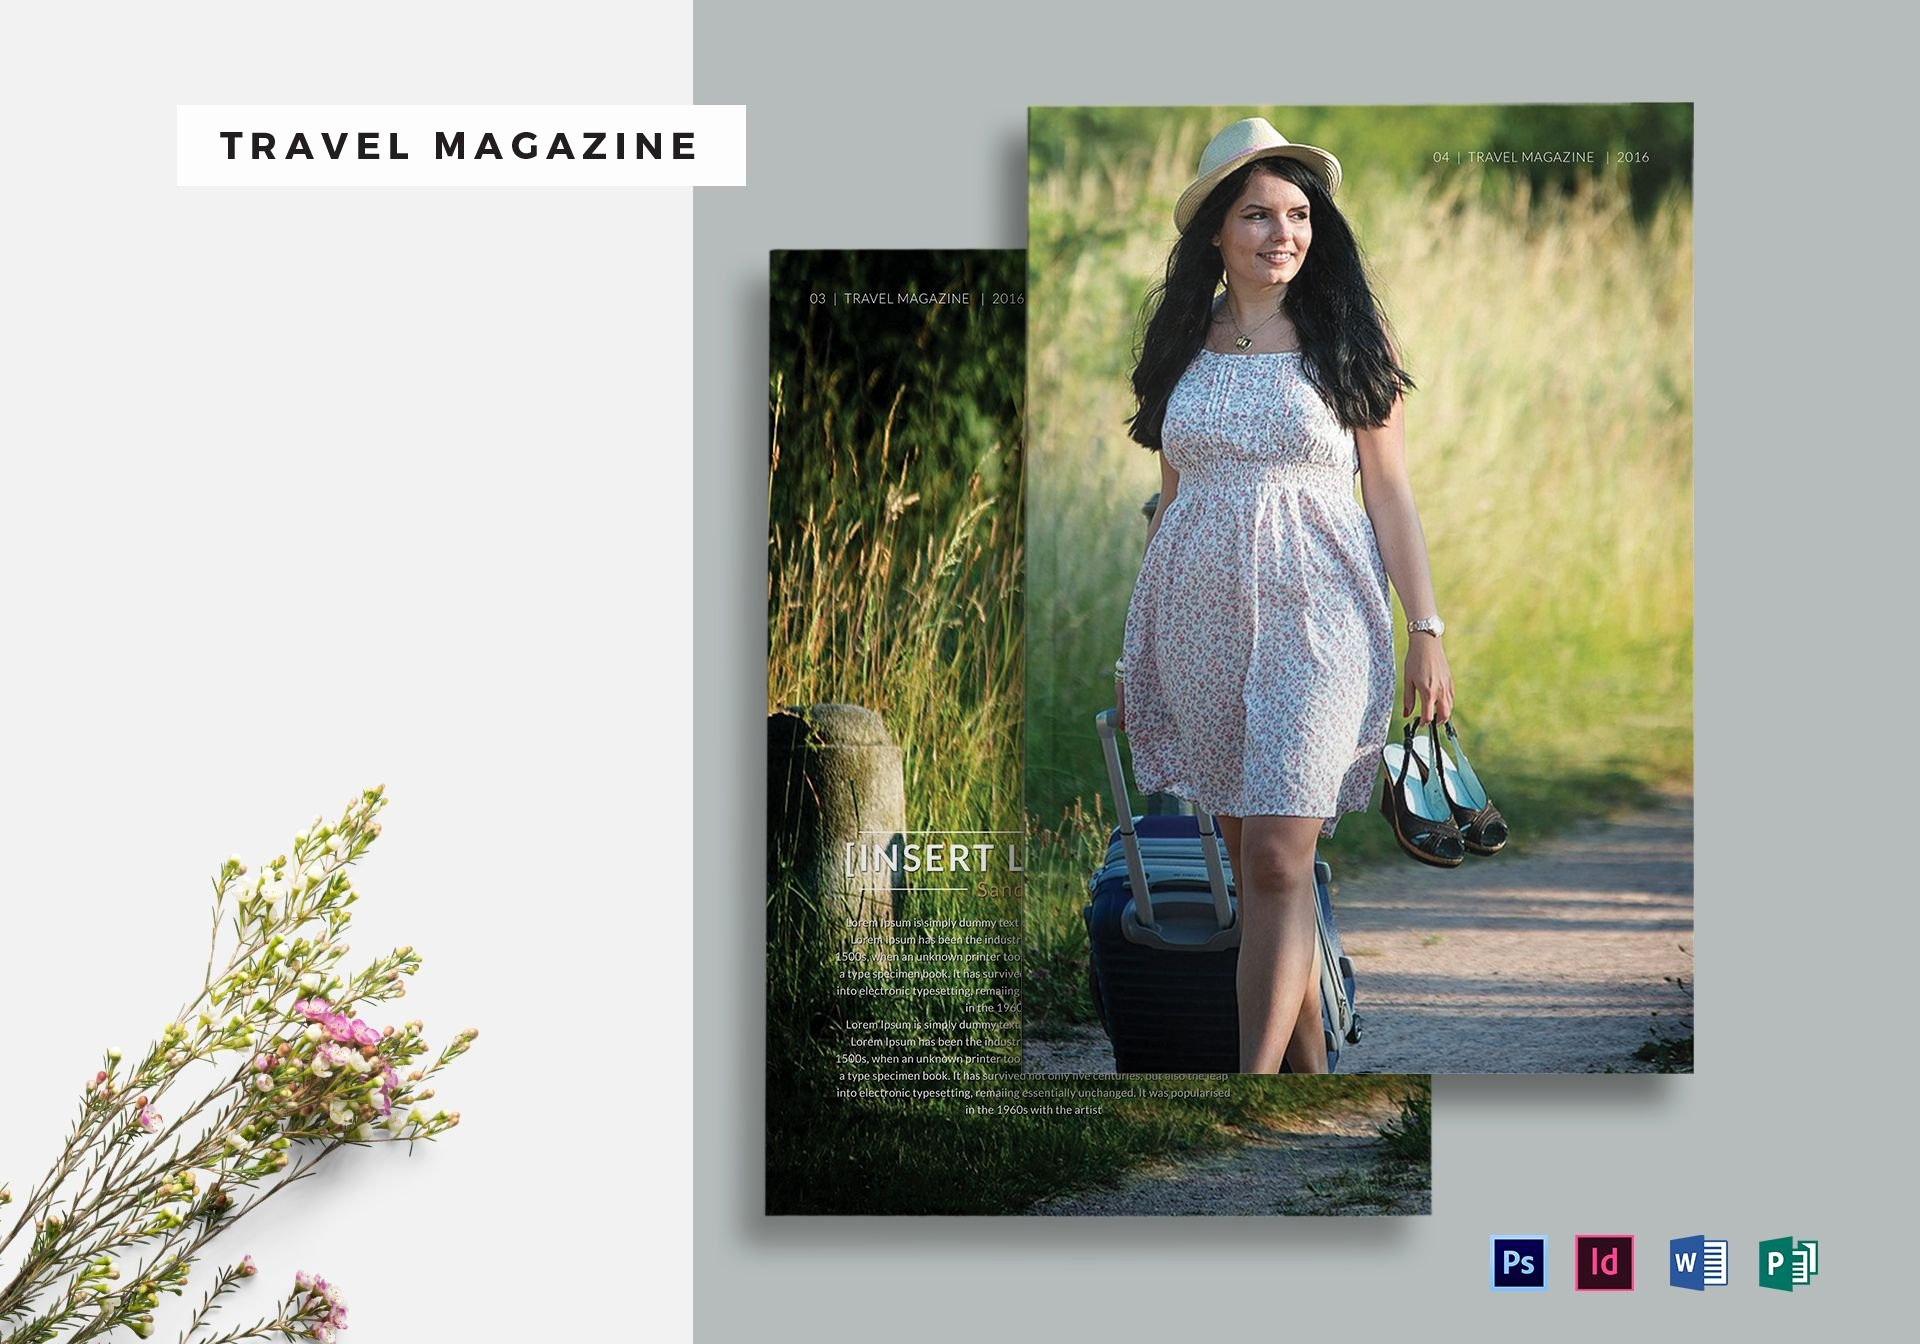 Magazine Templates for Microsoft Word Unique Travel Magazine Template In Psd Word Publisher Indesign